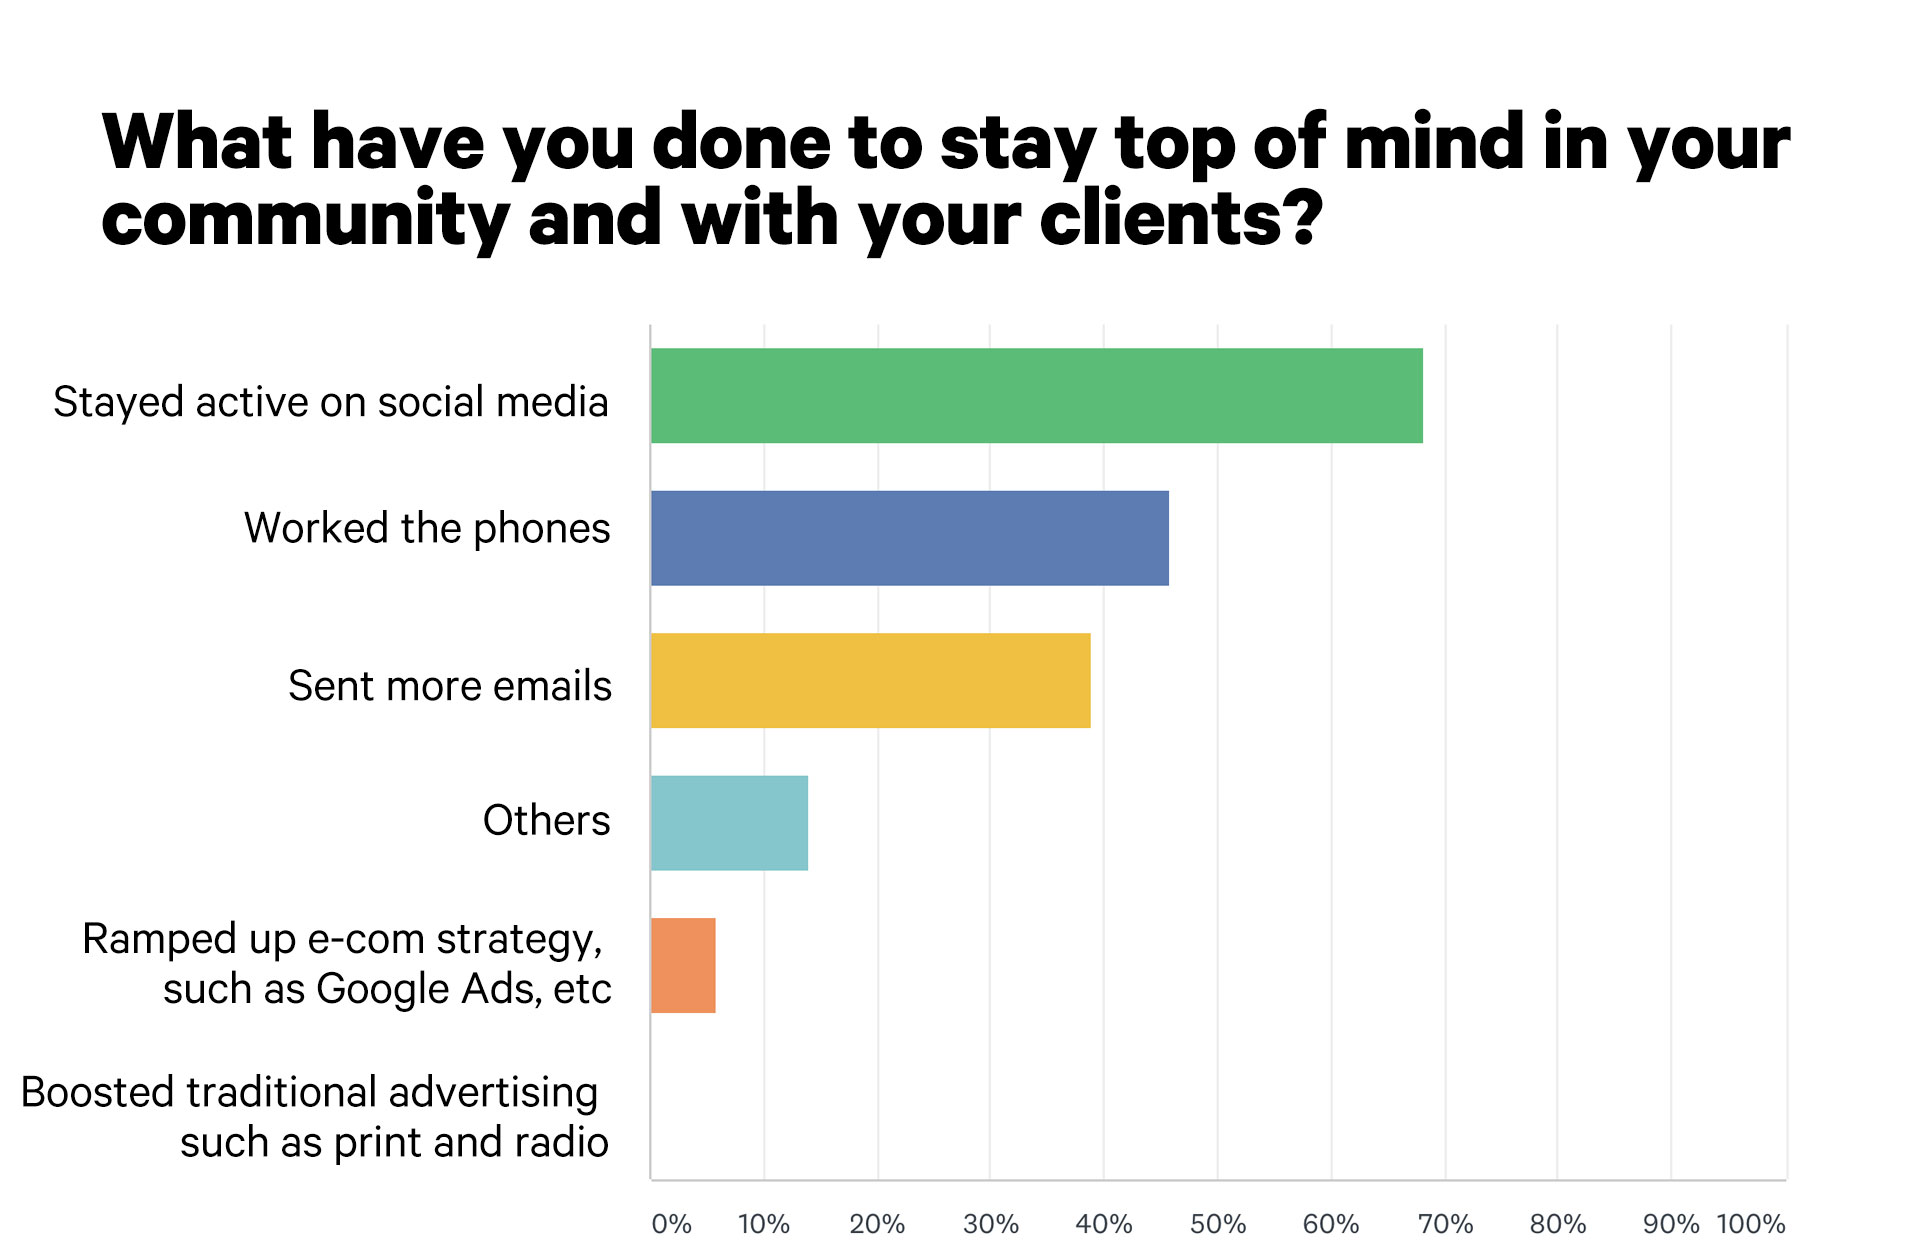 Amid COVID-19, Two-Thirds of Eyecare Biz Owners Are Tapping Social Media to Stay Connected With Clients